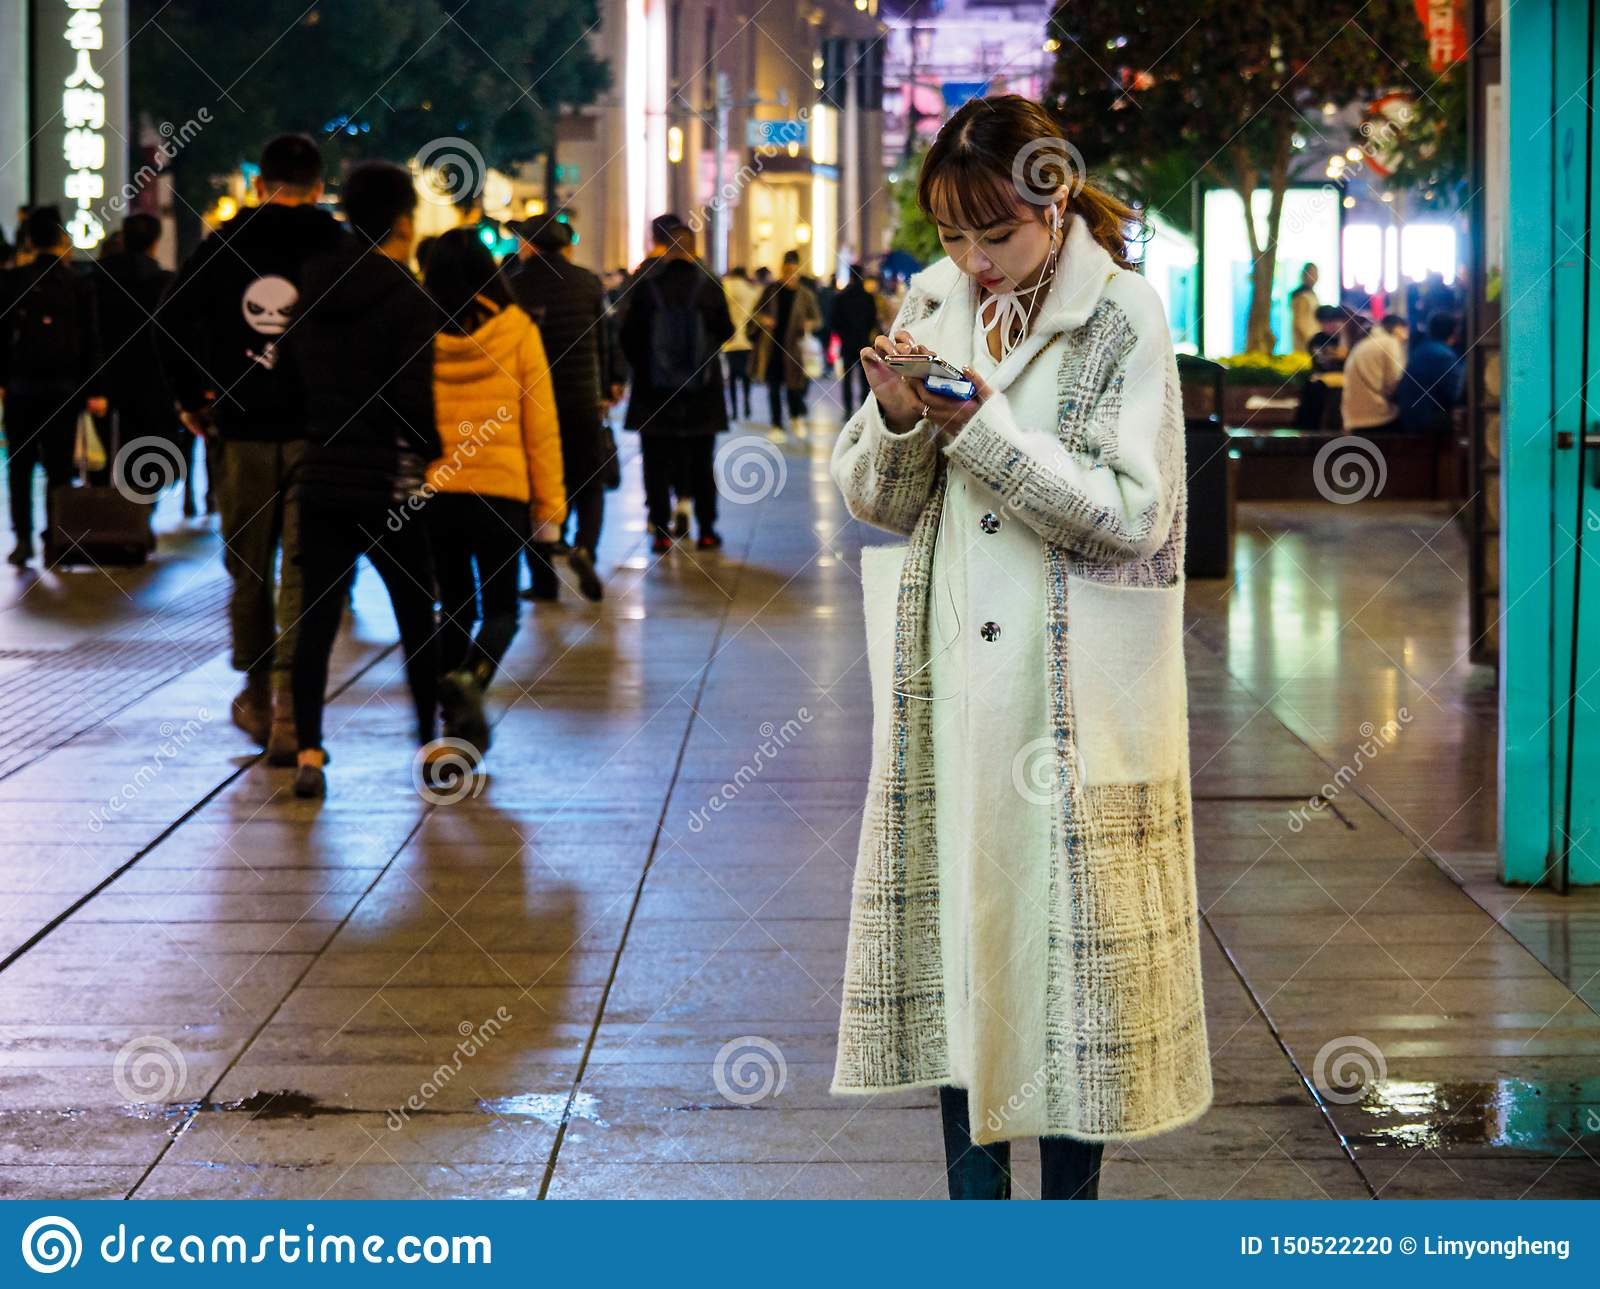 SHANGHAI, CHINA - 12 MAR 2019 –An attractive Chinese lady on her smartphone at East Nanjing Road Nanjing Dong Lu pedestrian